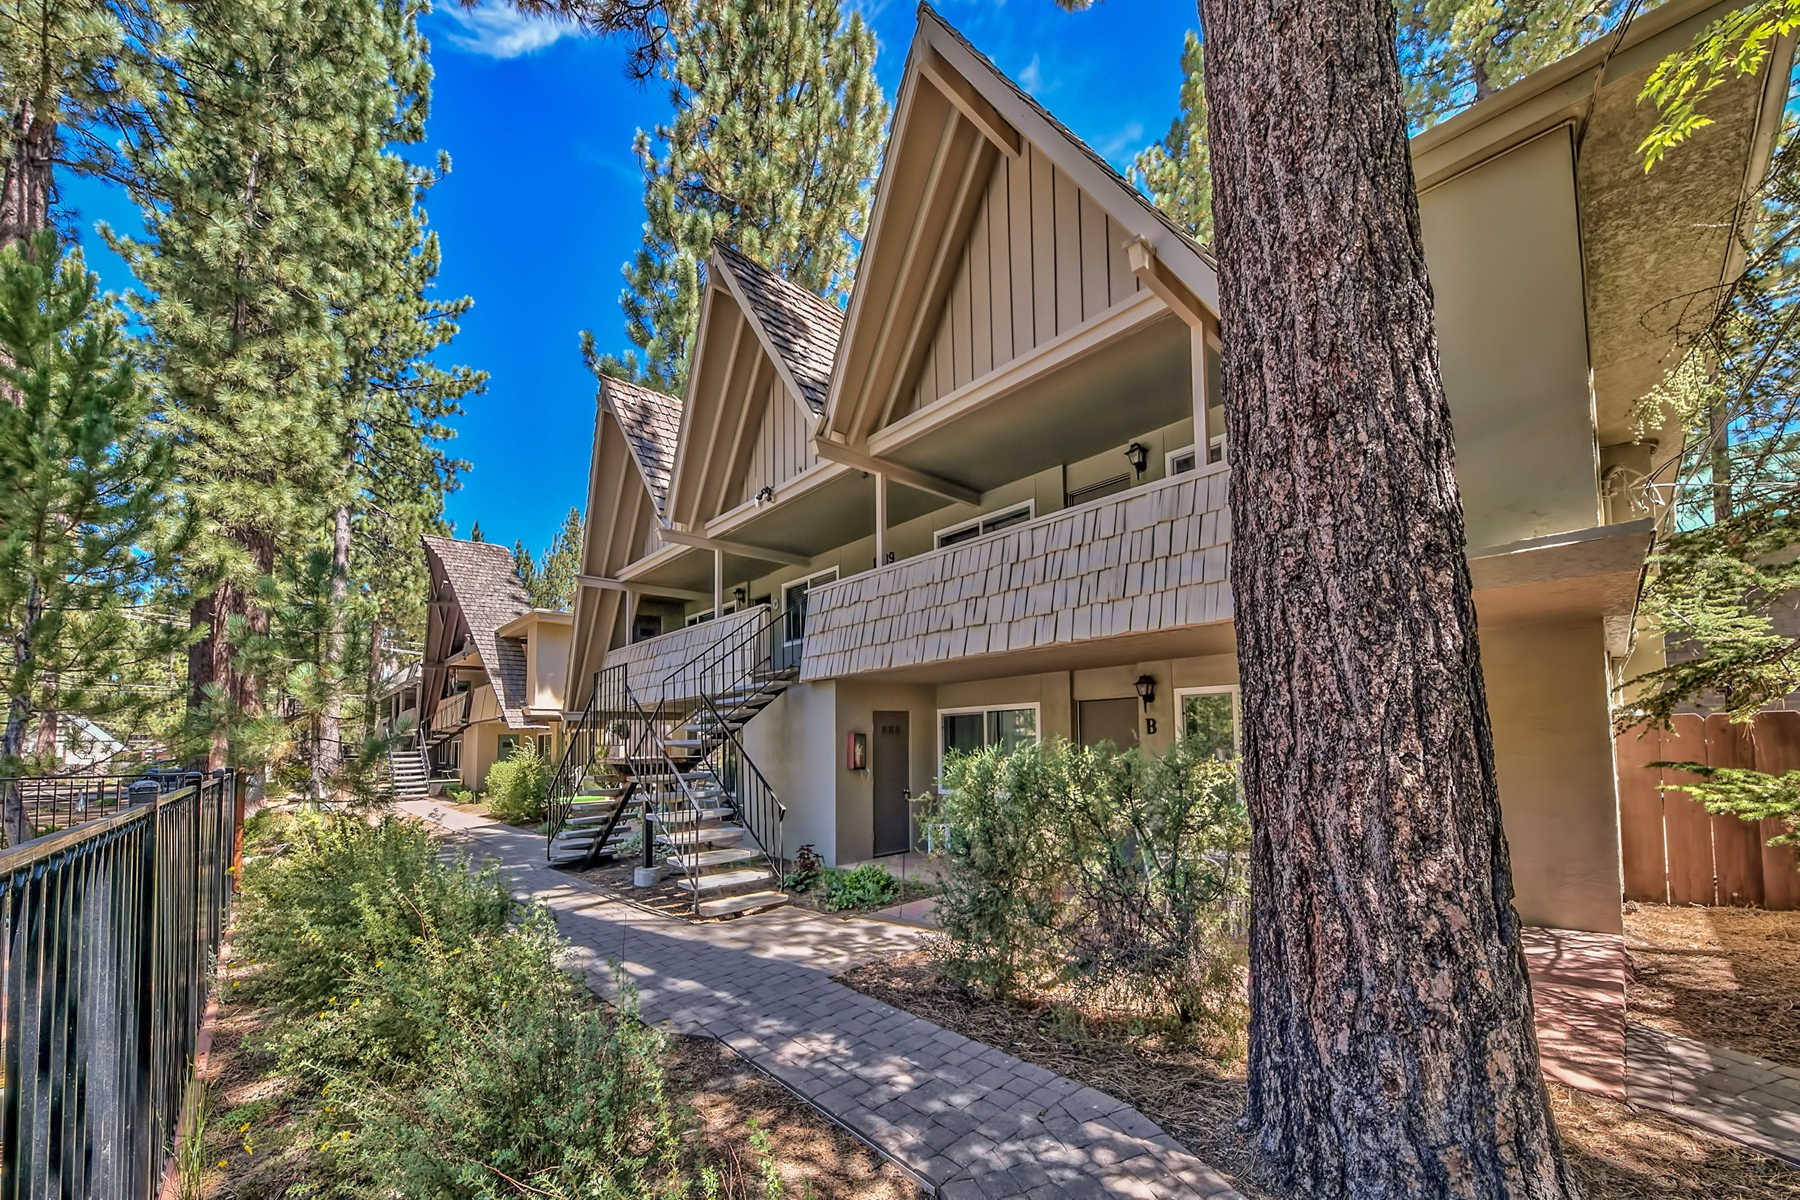 condominiums for Active at 1139 Herbert Ave, #D, South Lake Tahoe, CA 96150 1139 Herbert Ave, #D South Lake Tahoe, California 96150 United States